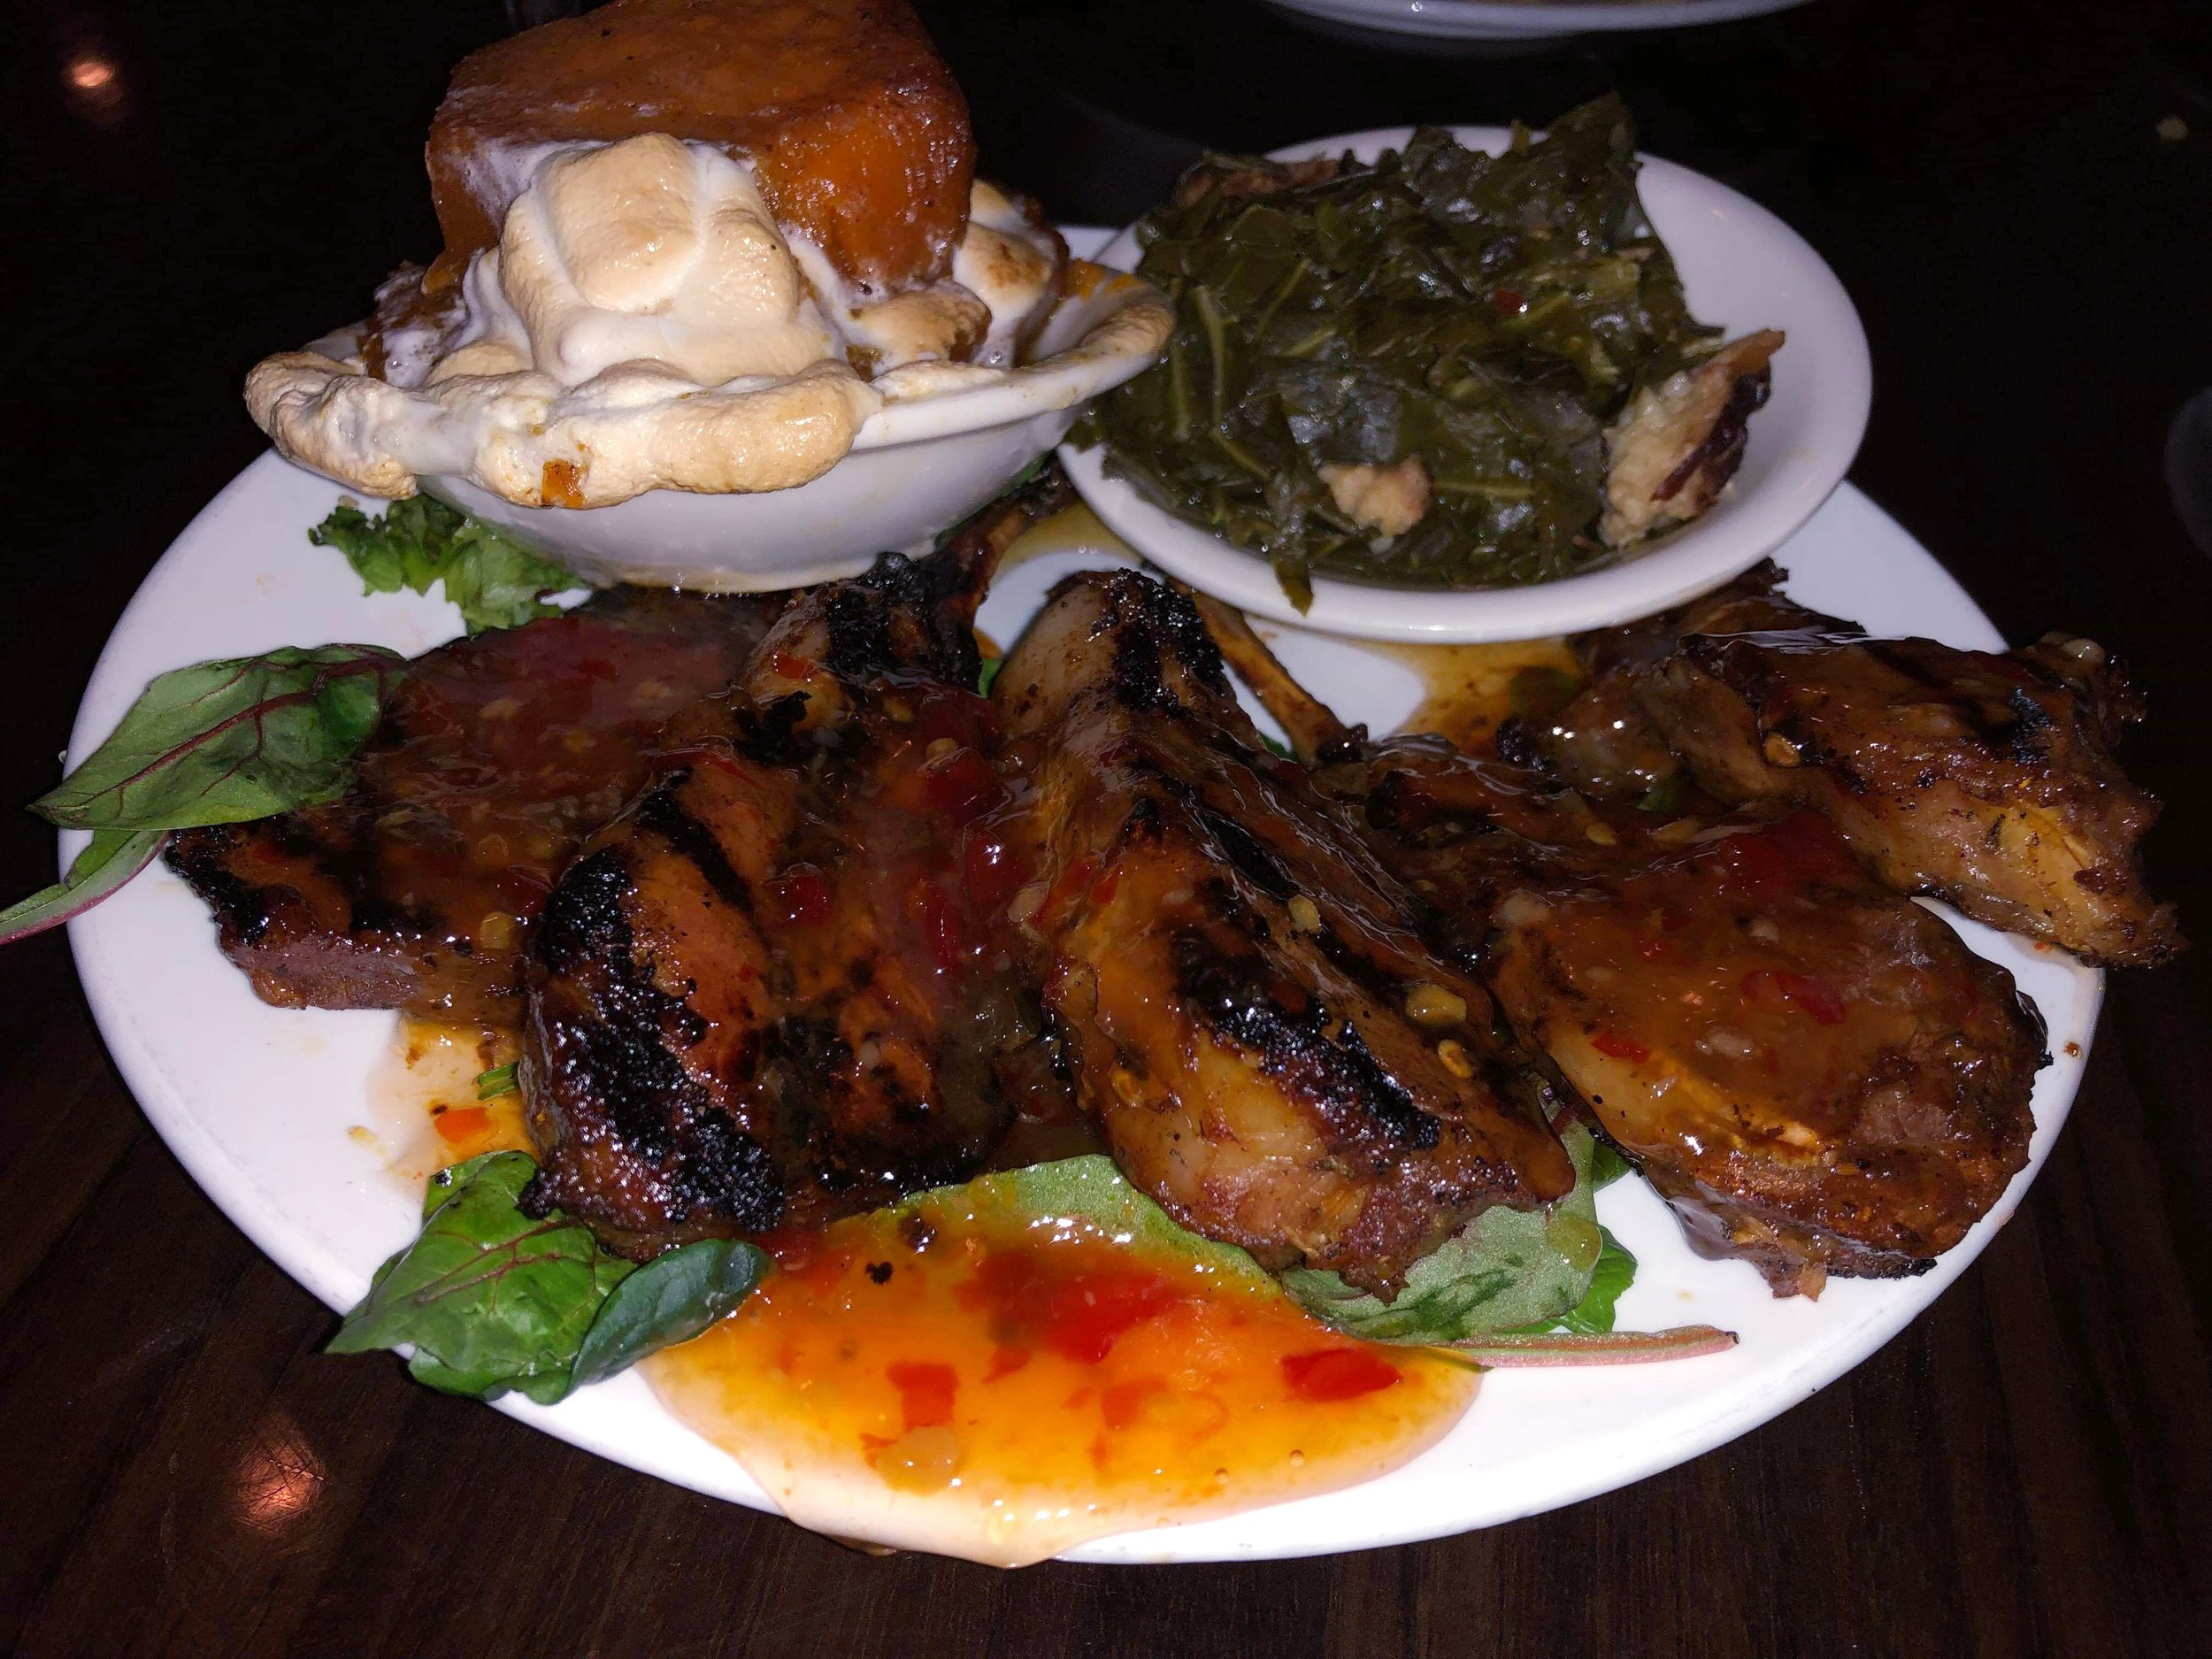 I couldn't leave Philly without stopping at the world famous Ms. Tootsies Soul Food Café located on the historic South street. The wait time was about 30 minutes, which was not bad for a Saturday night. The food was amazing!! Pictured is the Lollipop Lamb Chops with Sweet Chili Sauce. The sides are the southern collard greens with smoked turkey and candied yams with melted marshmallow topping, $32.00